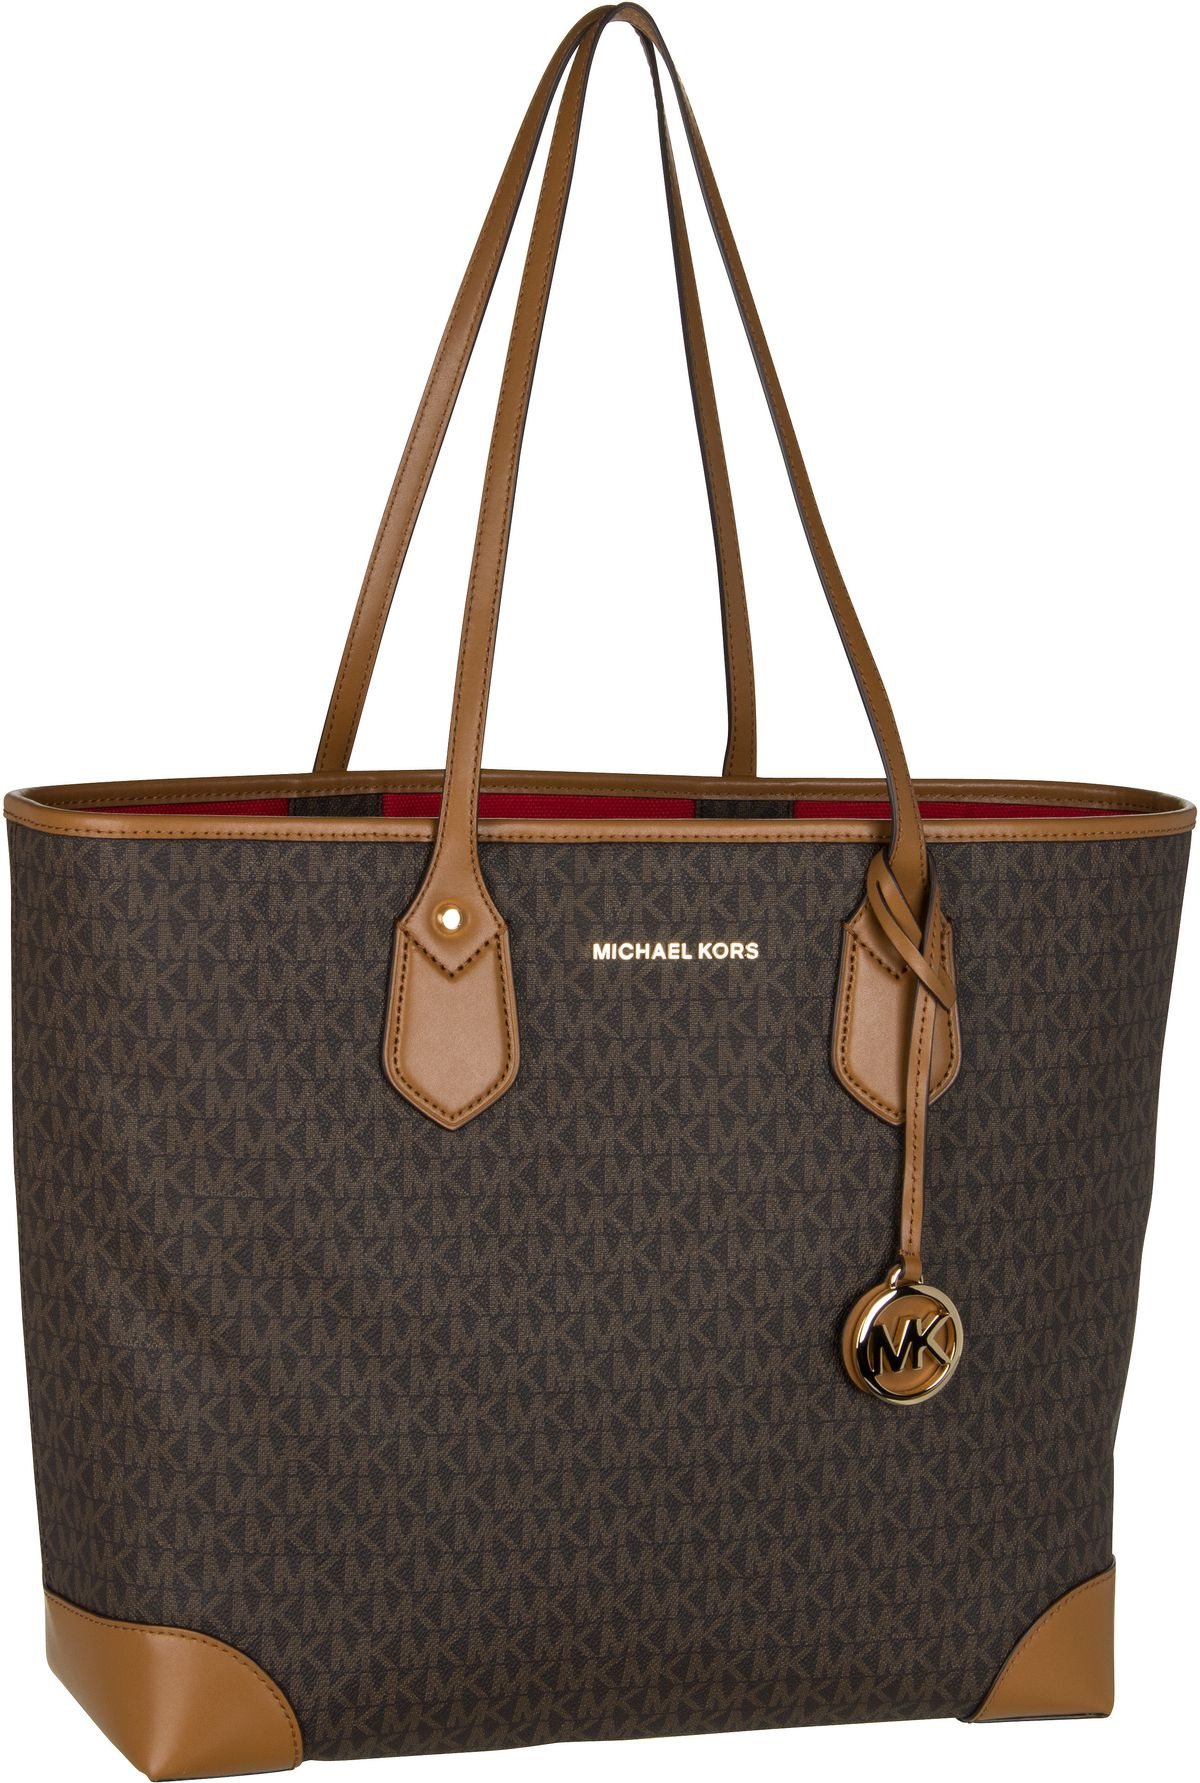 Michael Kors Shopper Eva Large Tote MK Signature Brown